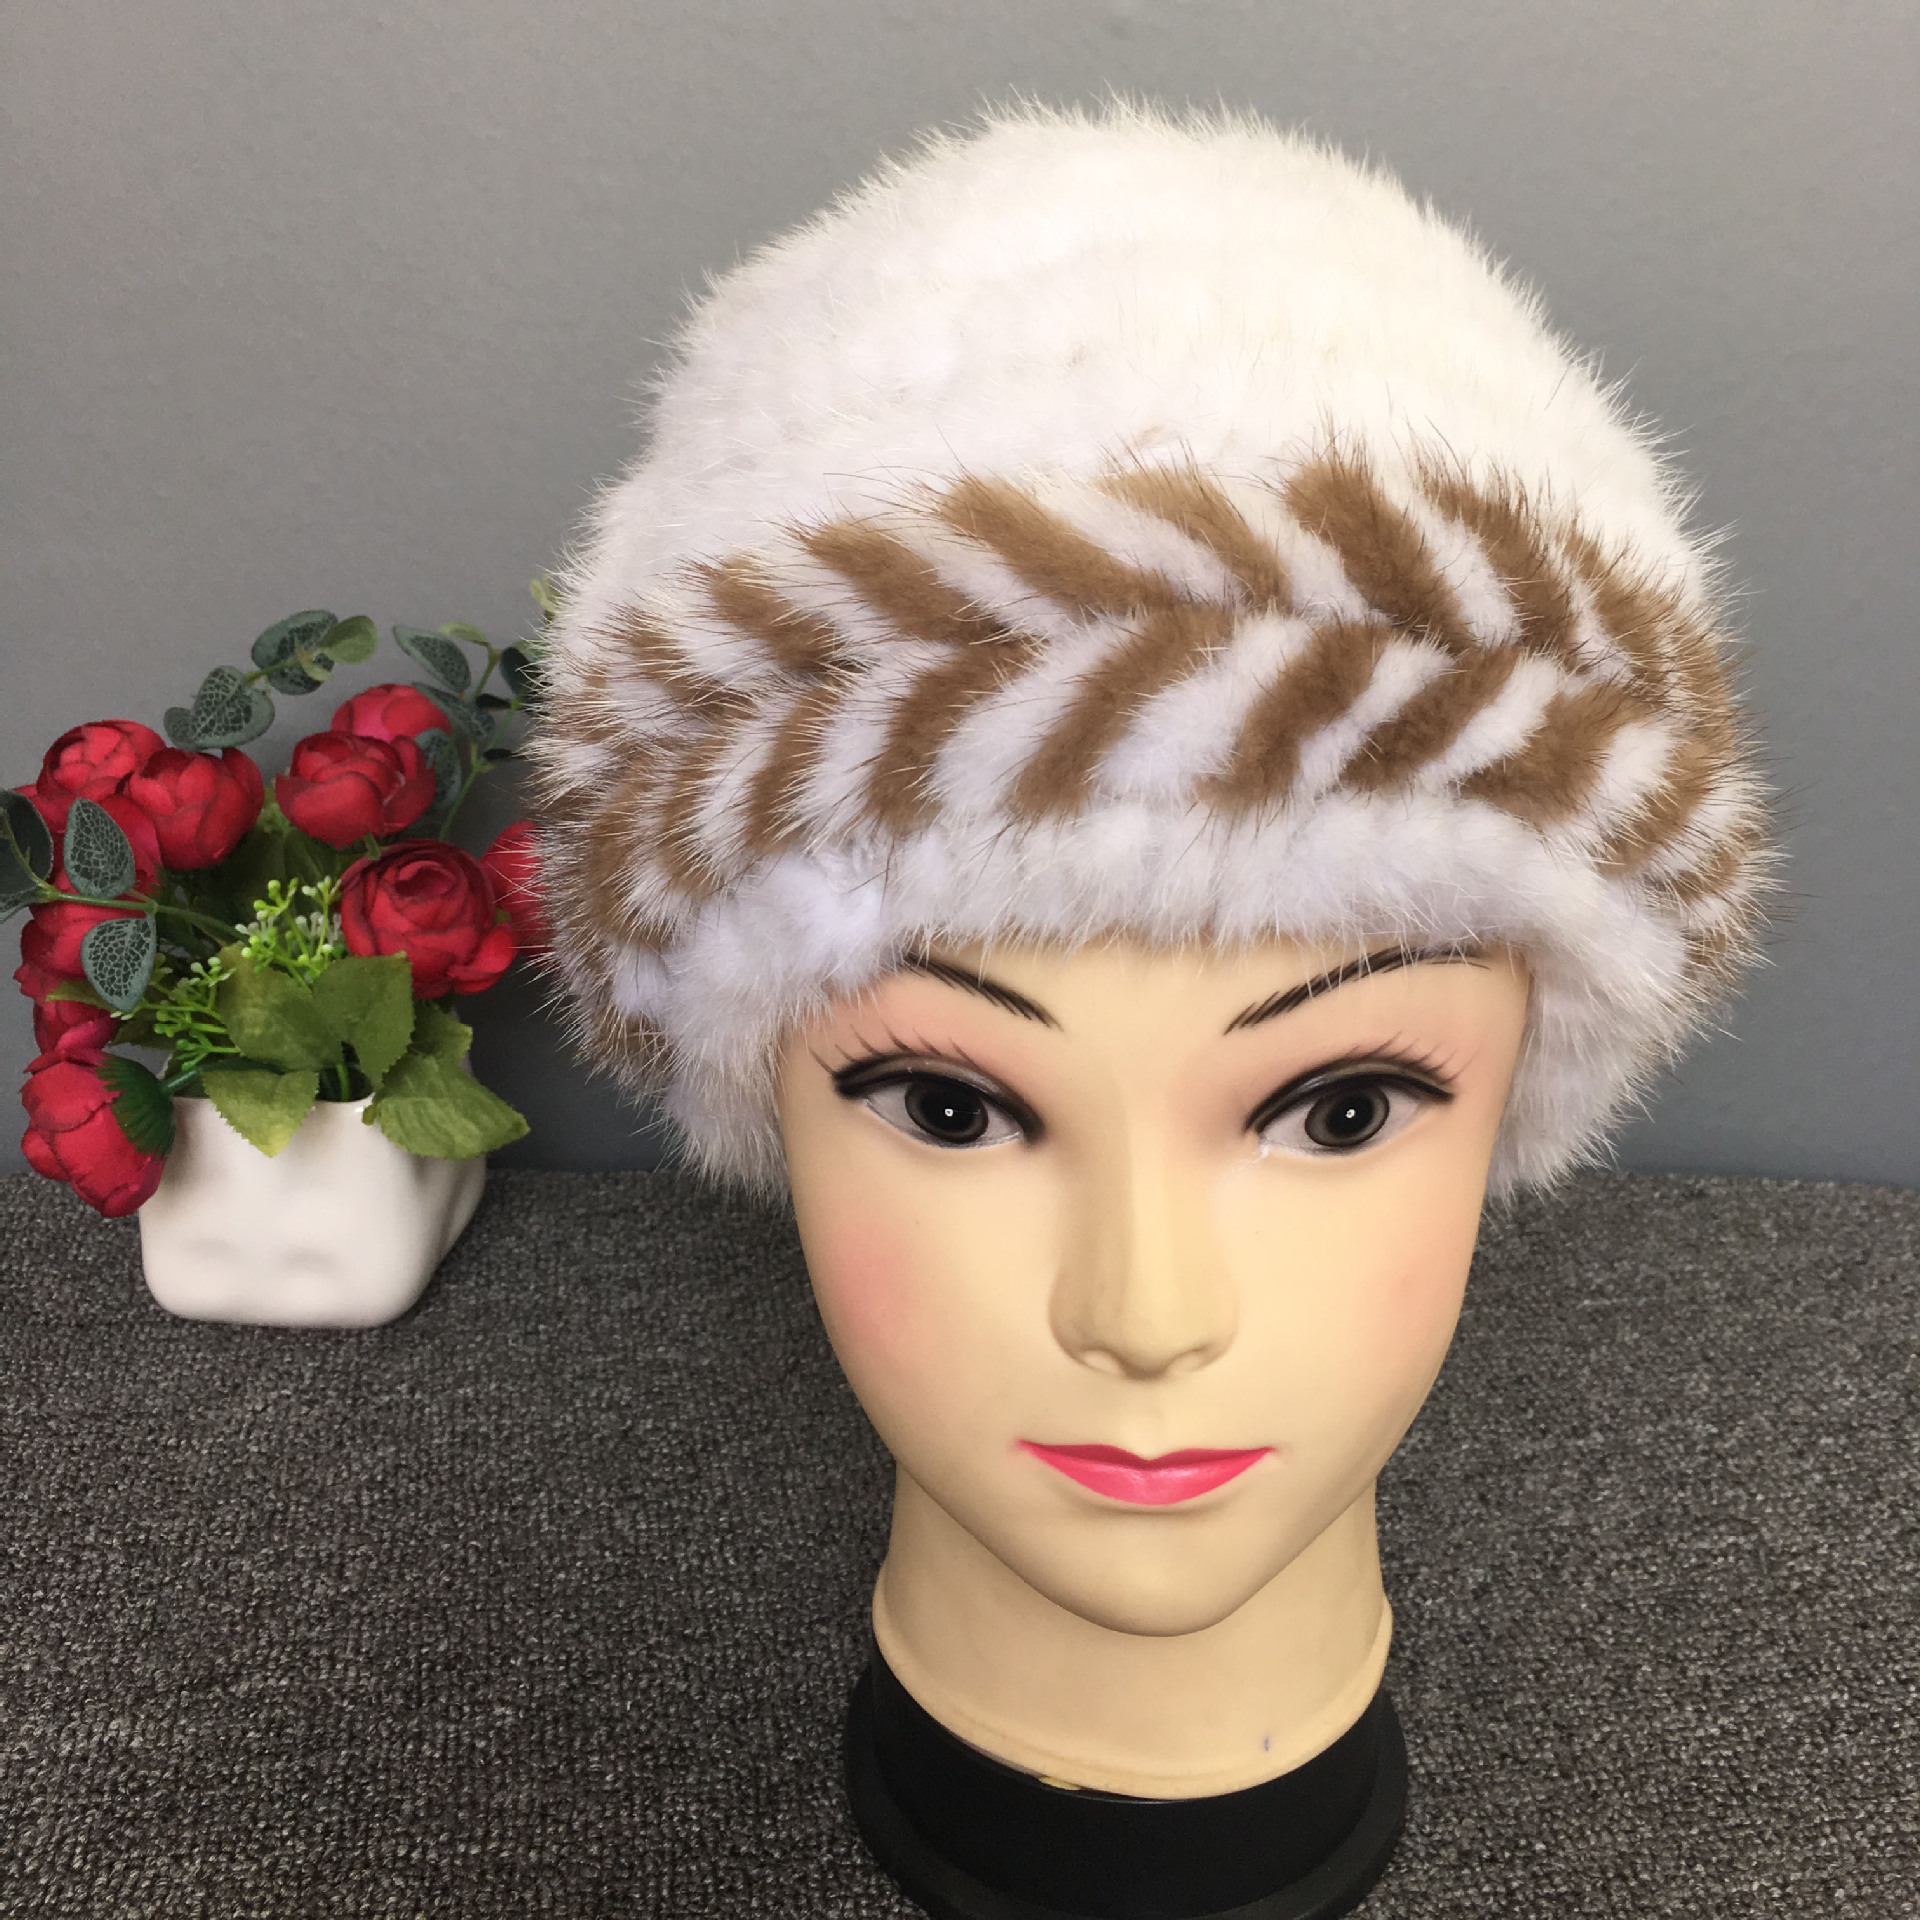 mink fur knitting hats for women thickened natural fur Knit Hat Cap ear warm 2017 Russian warm beanies hat female Knitted hats women russian women natural fur cap luxury knit mink fur hat winter fur hat 5 colors